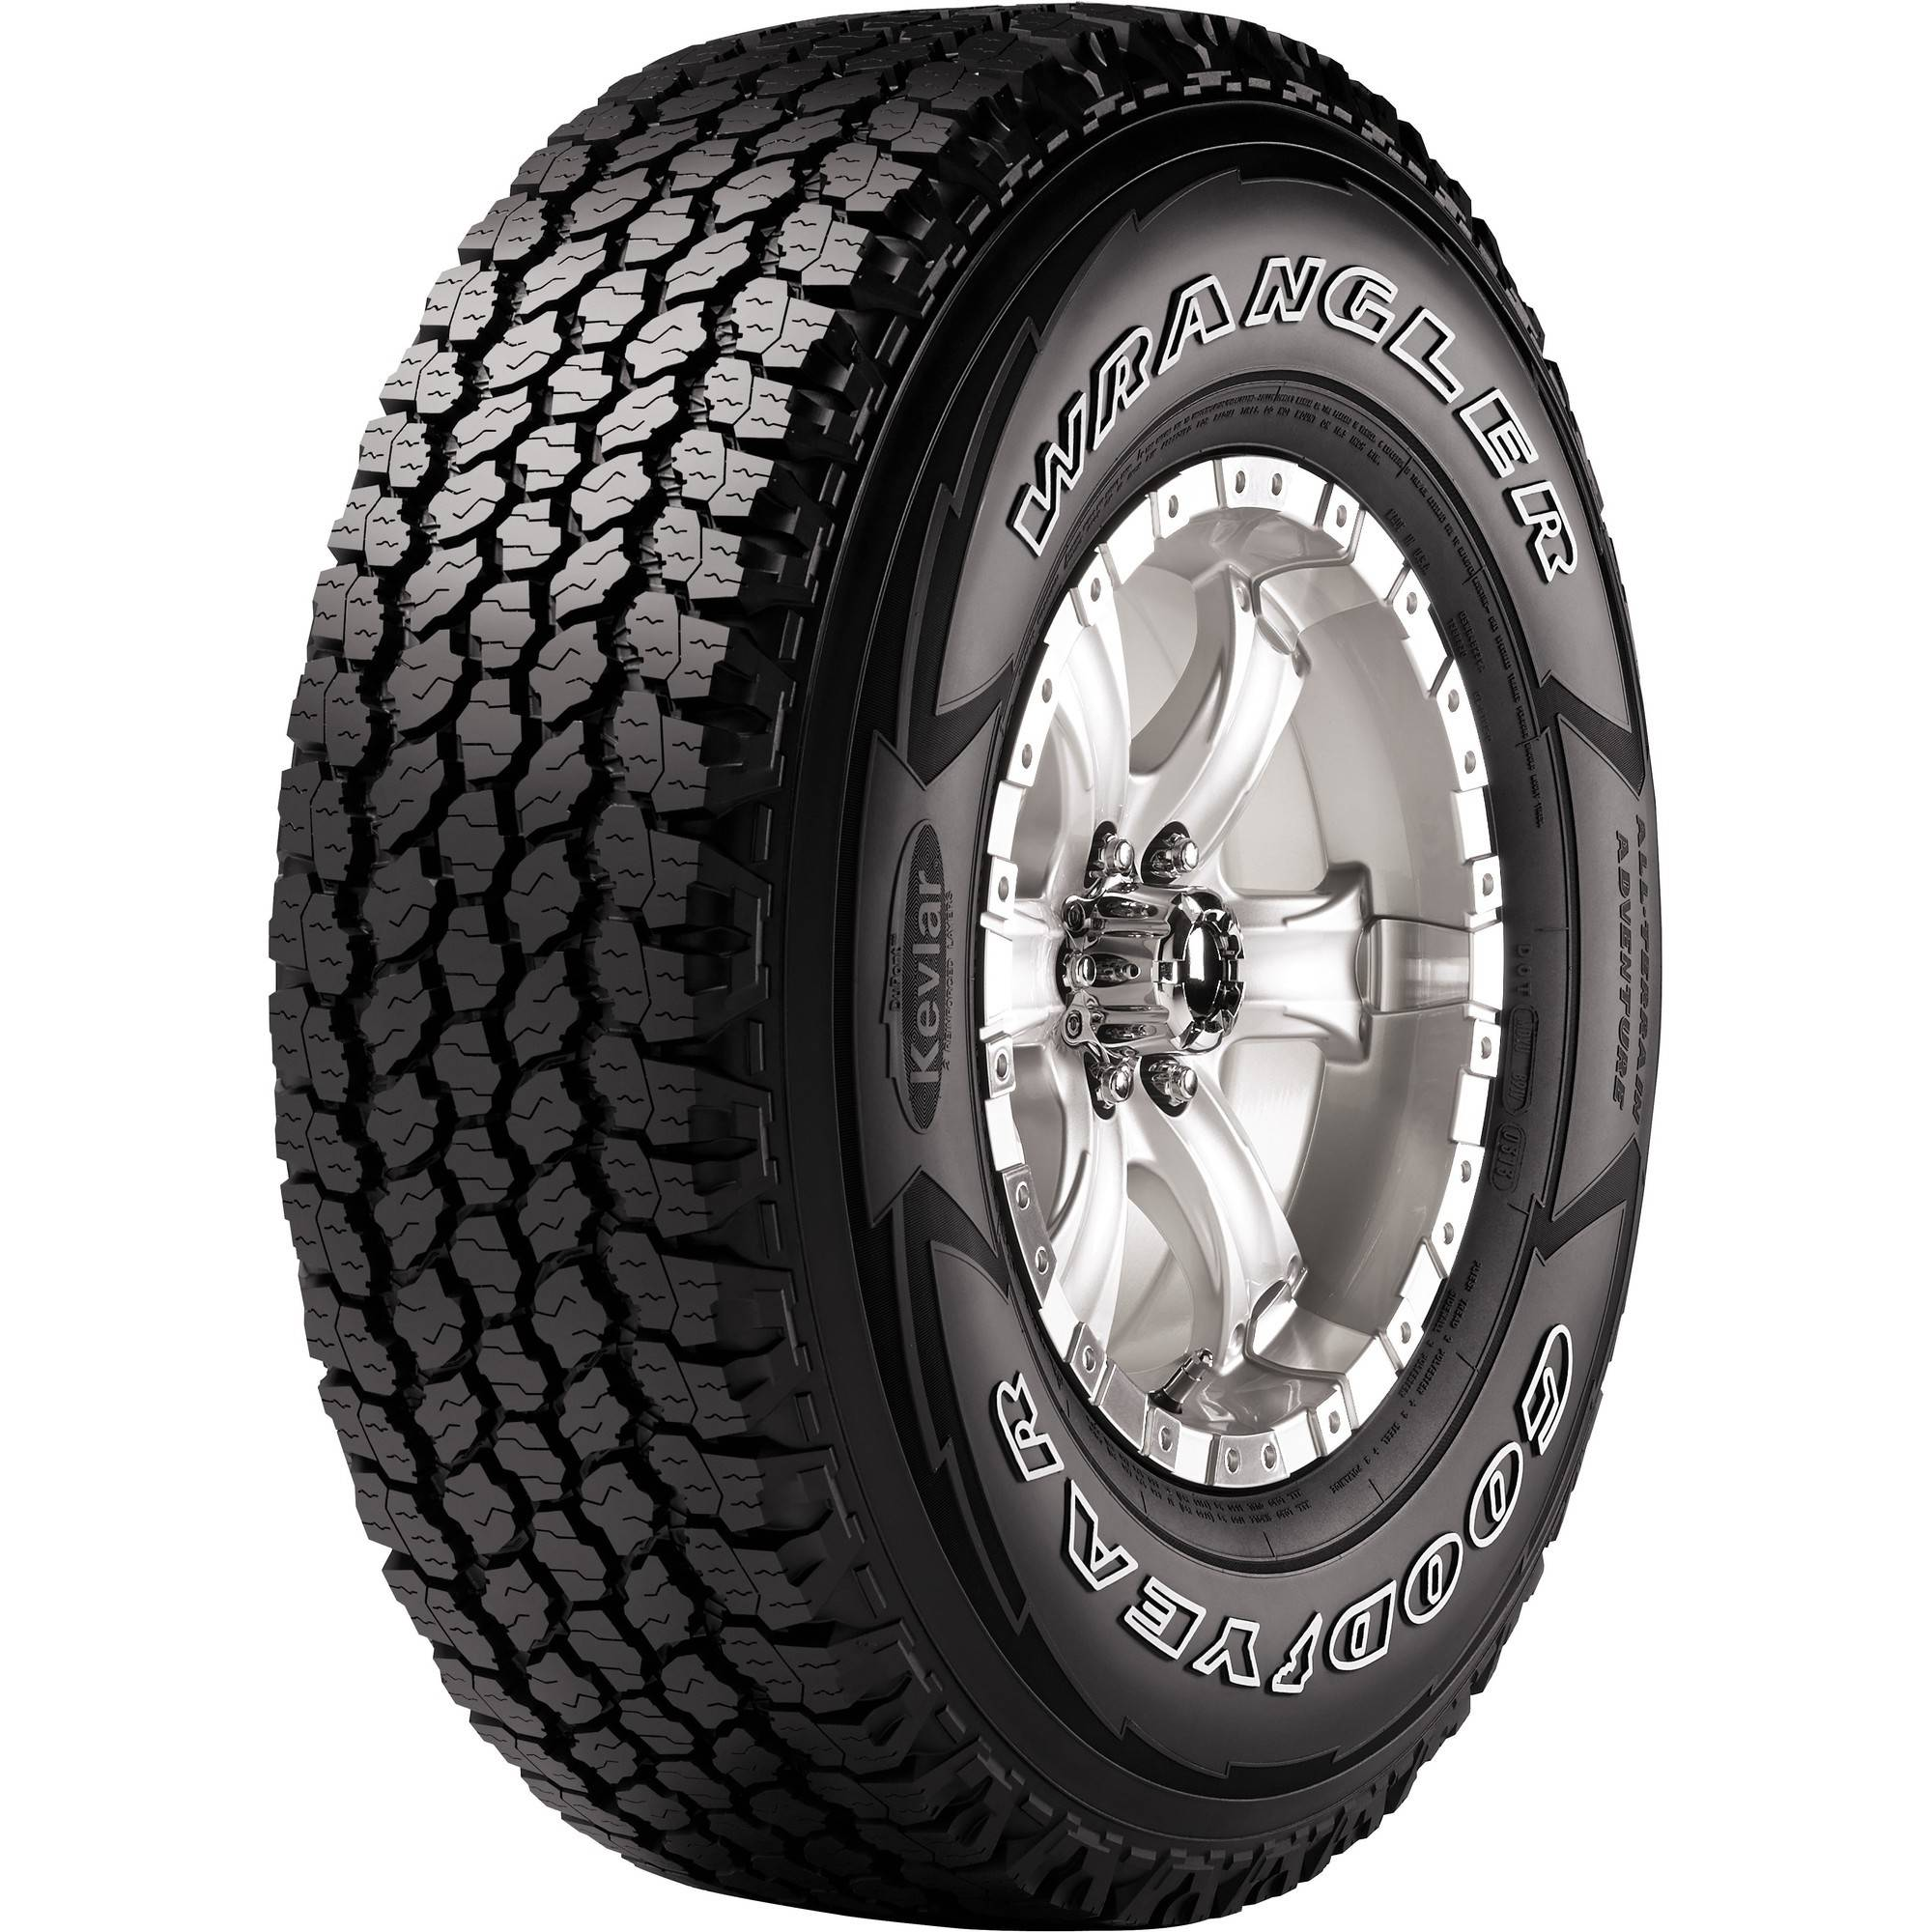 Goodyear Wrangler All-Terrain Adventure LT245/75R16/10 Tire 120S